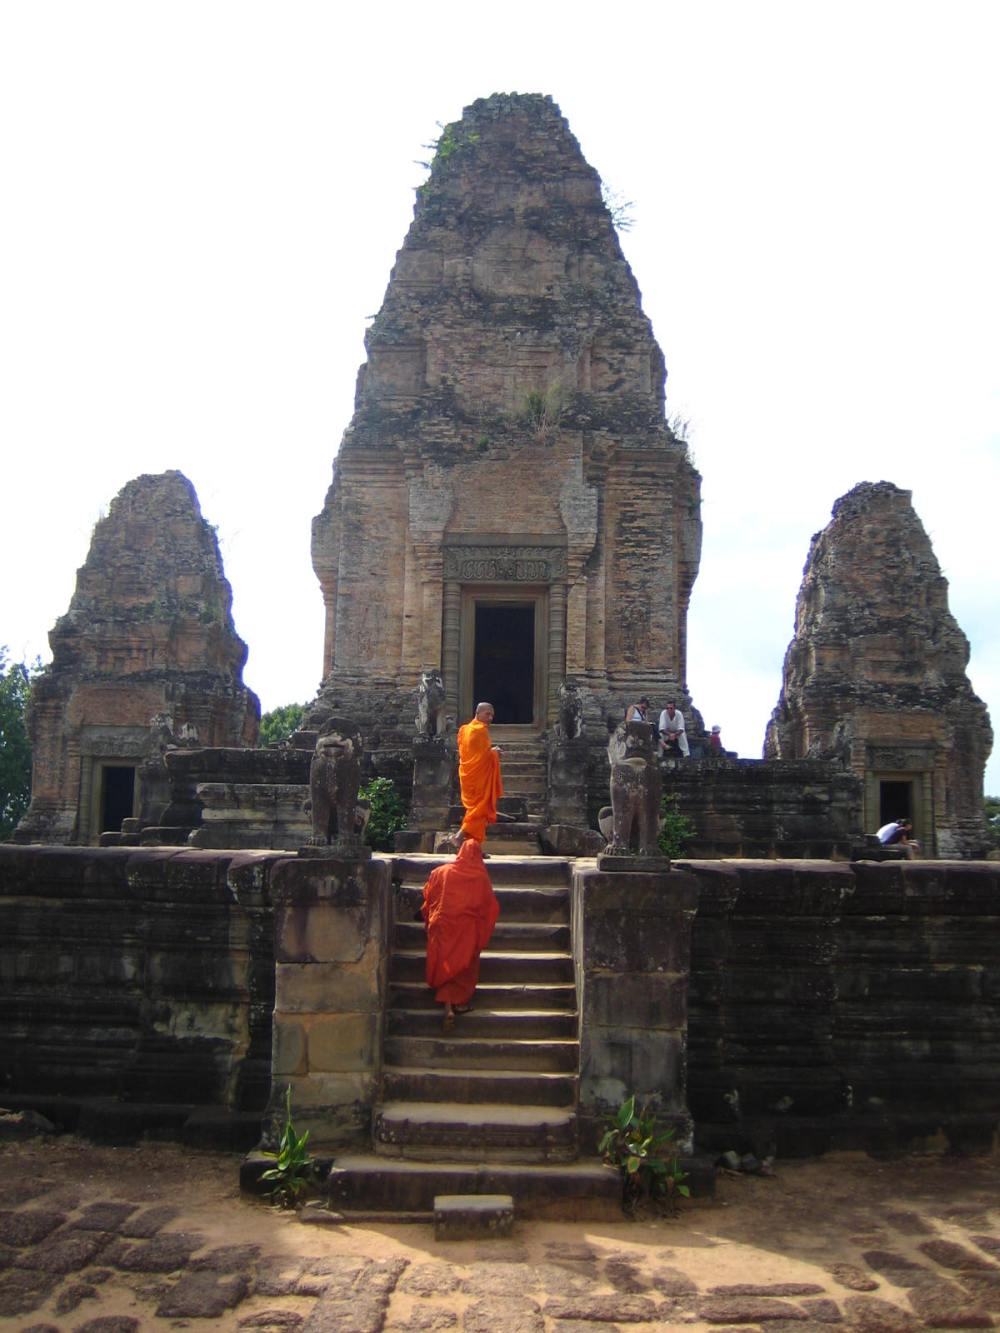 057 - Monks, Mebon Temple